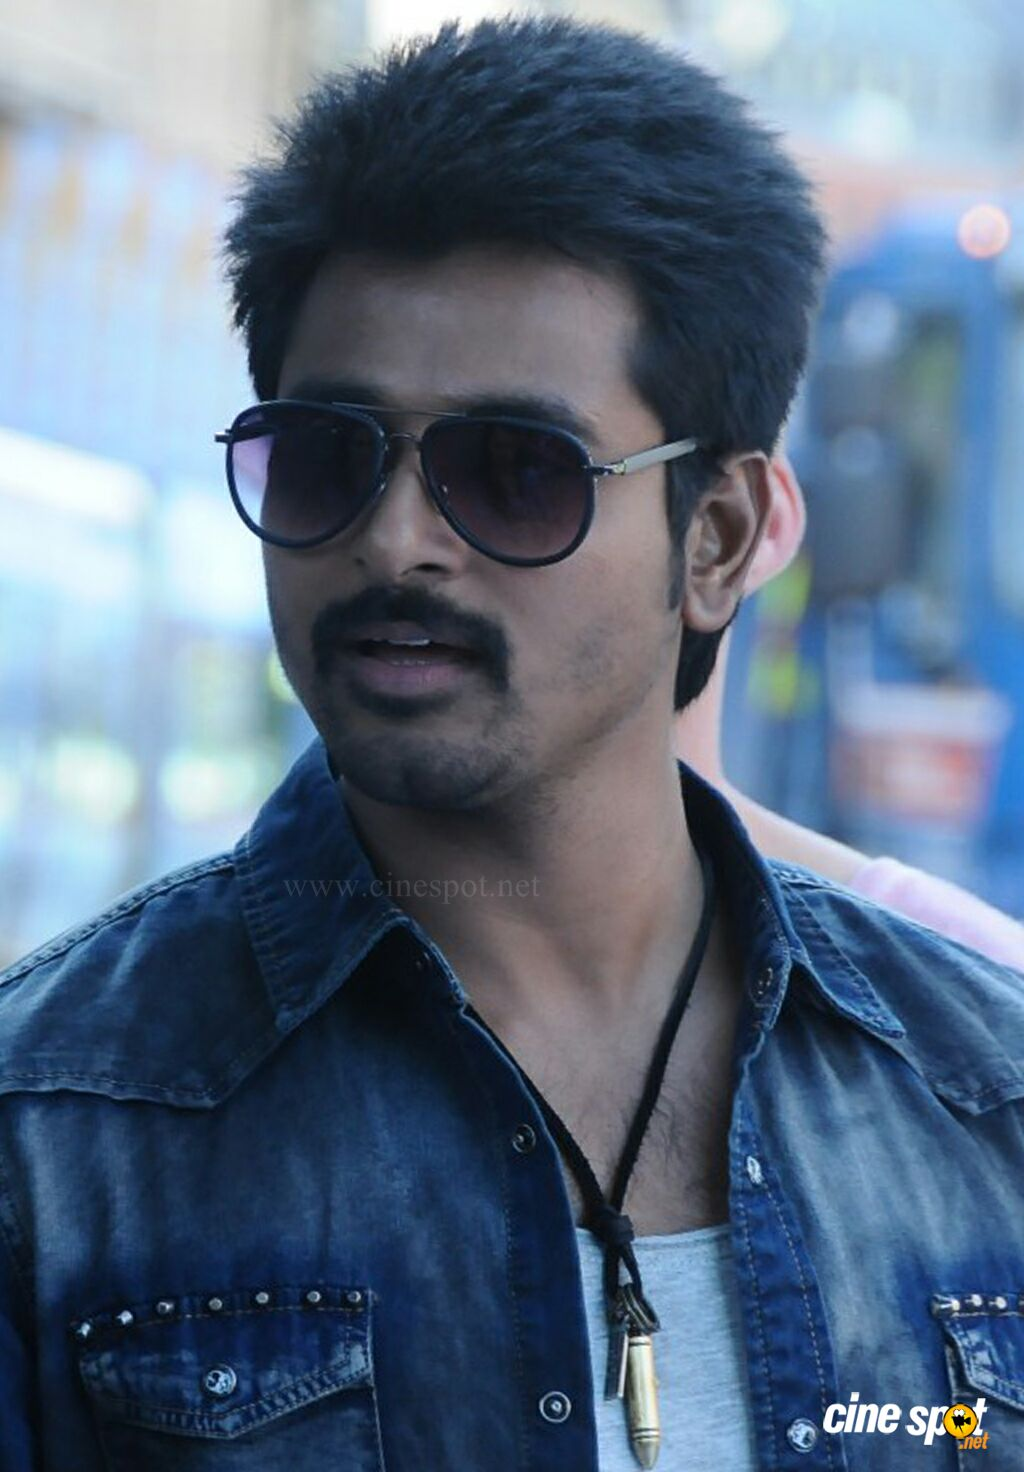 sivakarthikeyan castesivakarthikeyan age, sivakarthikeyan car, sivakarthikeyan born, sivakarthikeyan dob, sivakarthikeyan wiki, sivakarthikeyan salary, sivakarthikeyan diwali special show, sivakarthikeyan photos, sivakarthikeyan next movie, sivakarthikeyan biodata, sivakarthikeyan comedy, sivakarthikeyan images, sivakarthikeyan family, sivakarthikeyan facebook, sivakarthikeyan twitter, sivakarthikeyan movies, sivakarthikeyan daughter, sivakarthikeyan caste, sivakarthikeyan movie list, sivakarthikeyan attack